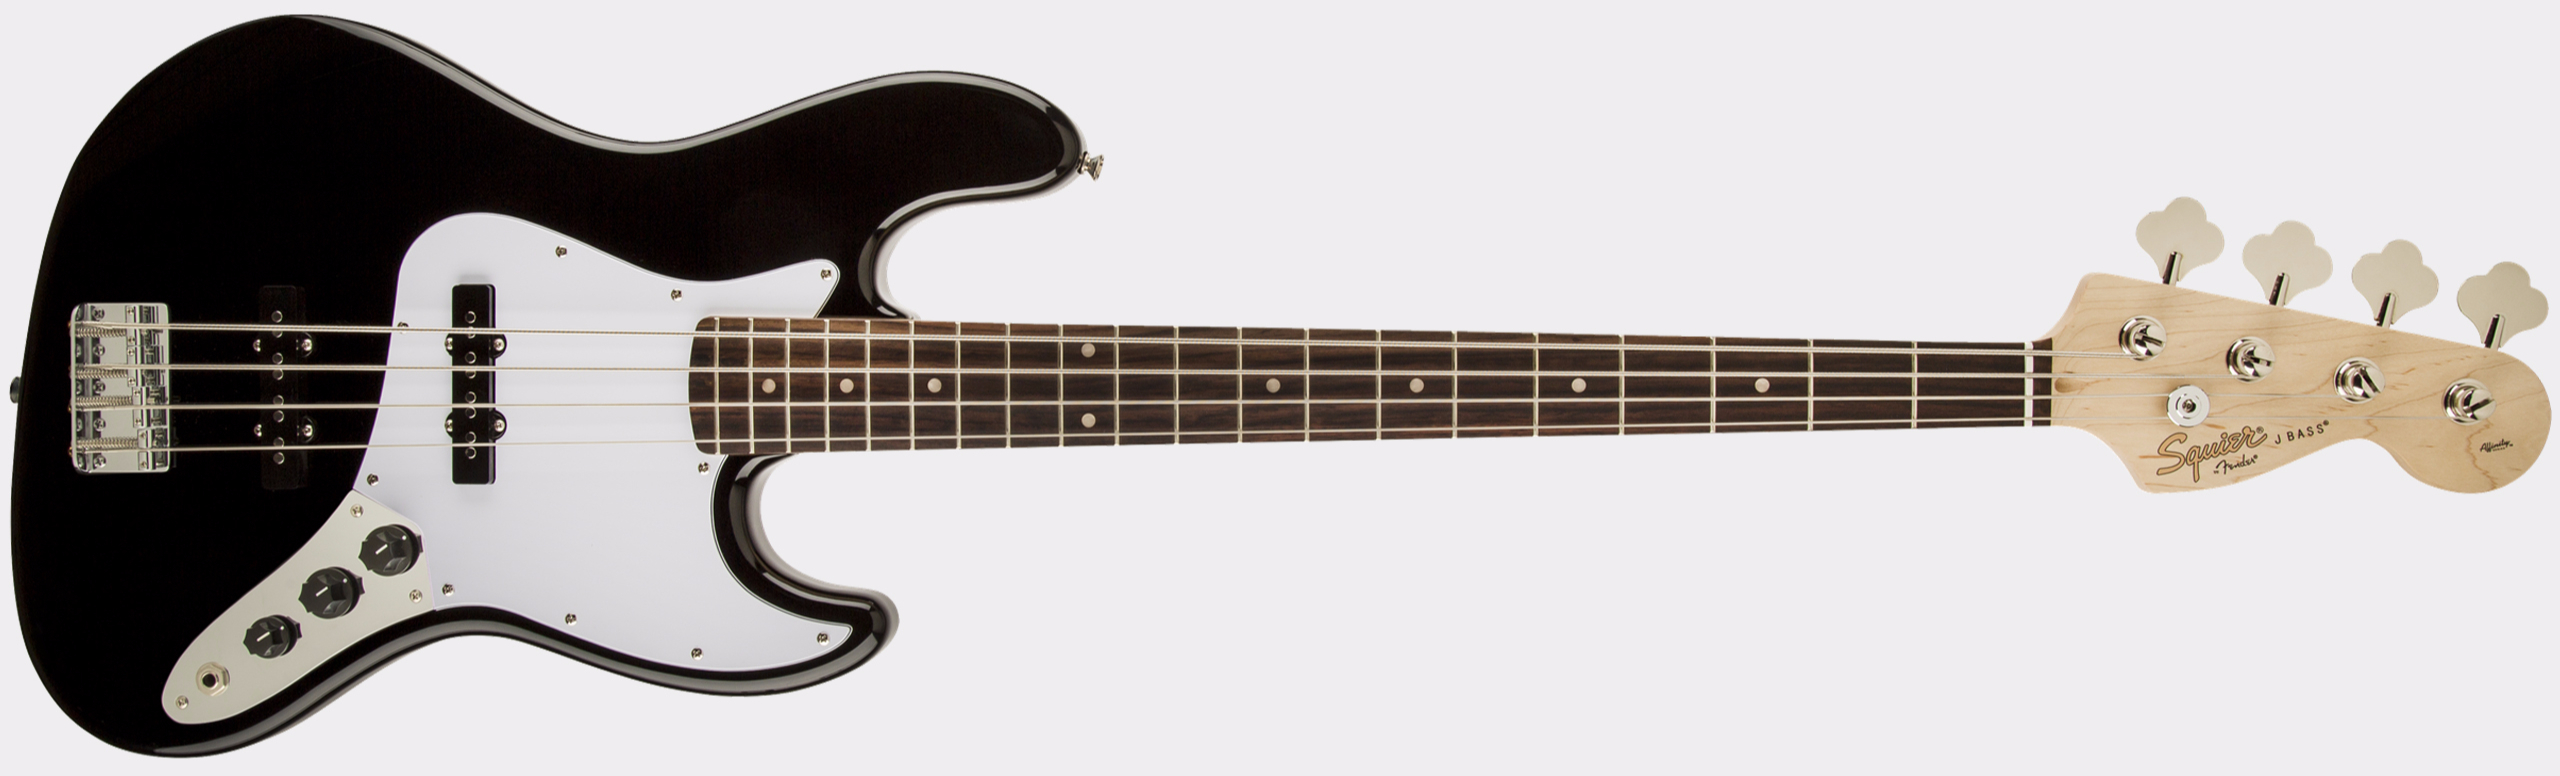 SQUIER Affinity Series Jazz Bass RW Black